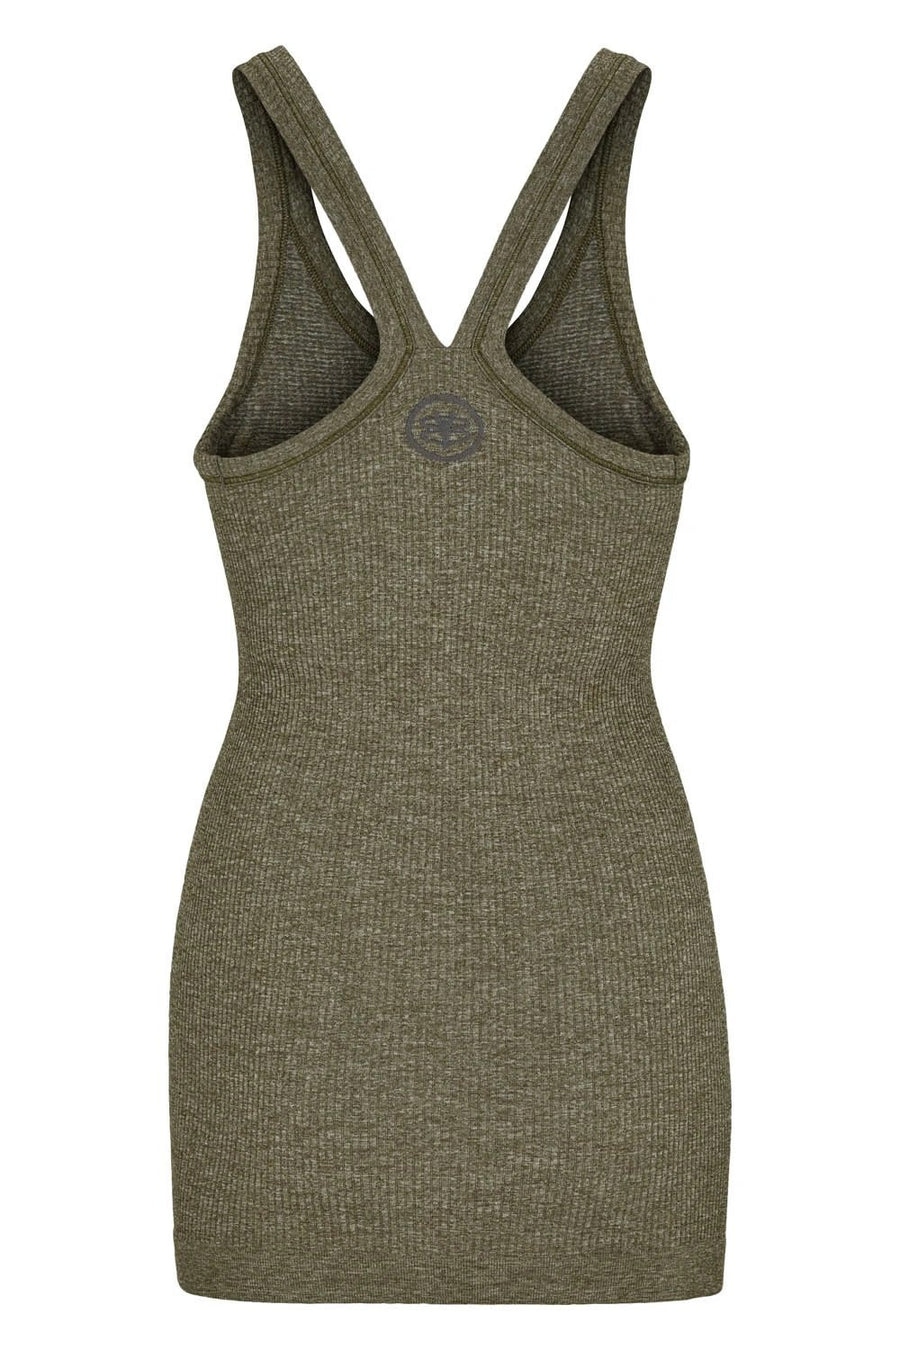 Y-Back Tank W/ Bra - Army